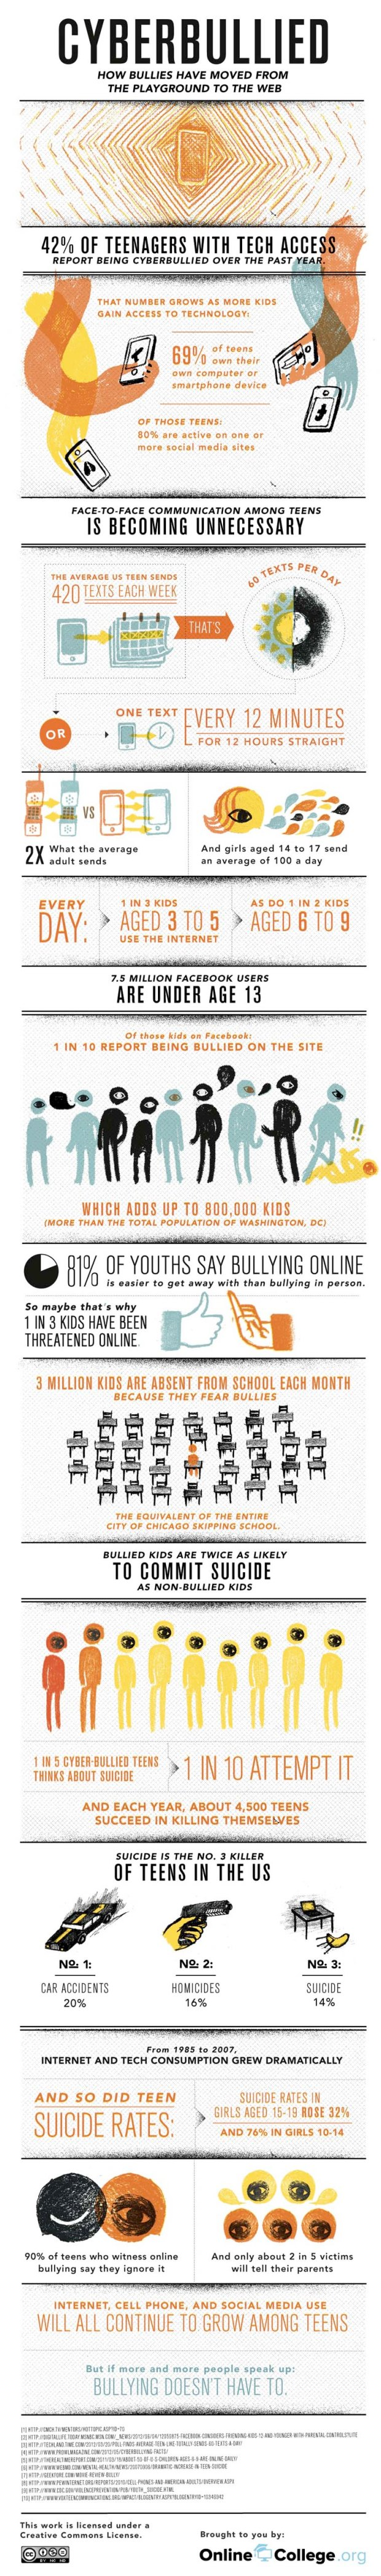 cyberbullyinfographic